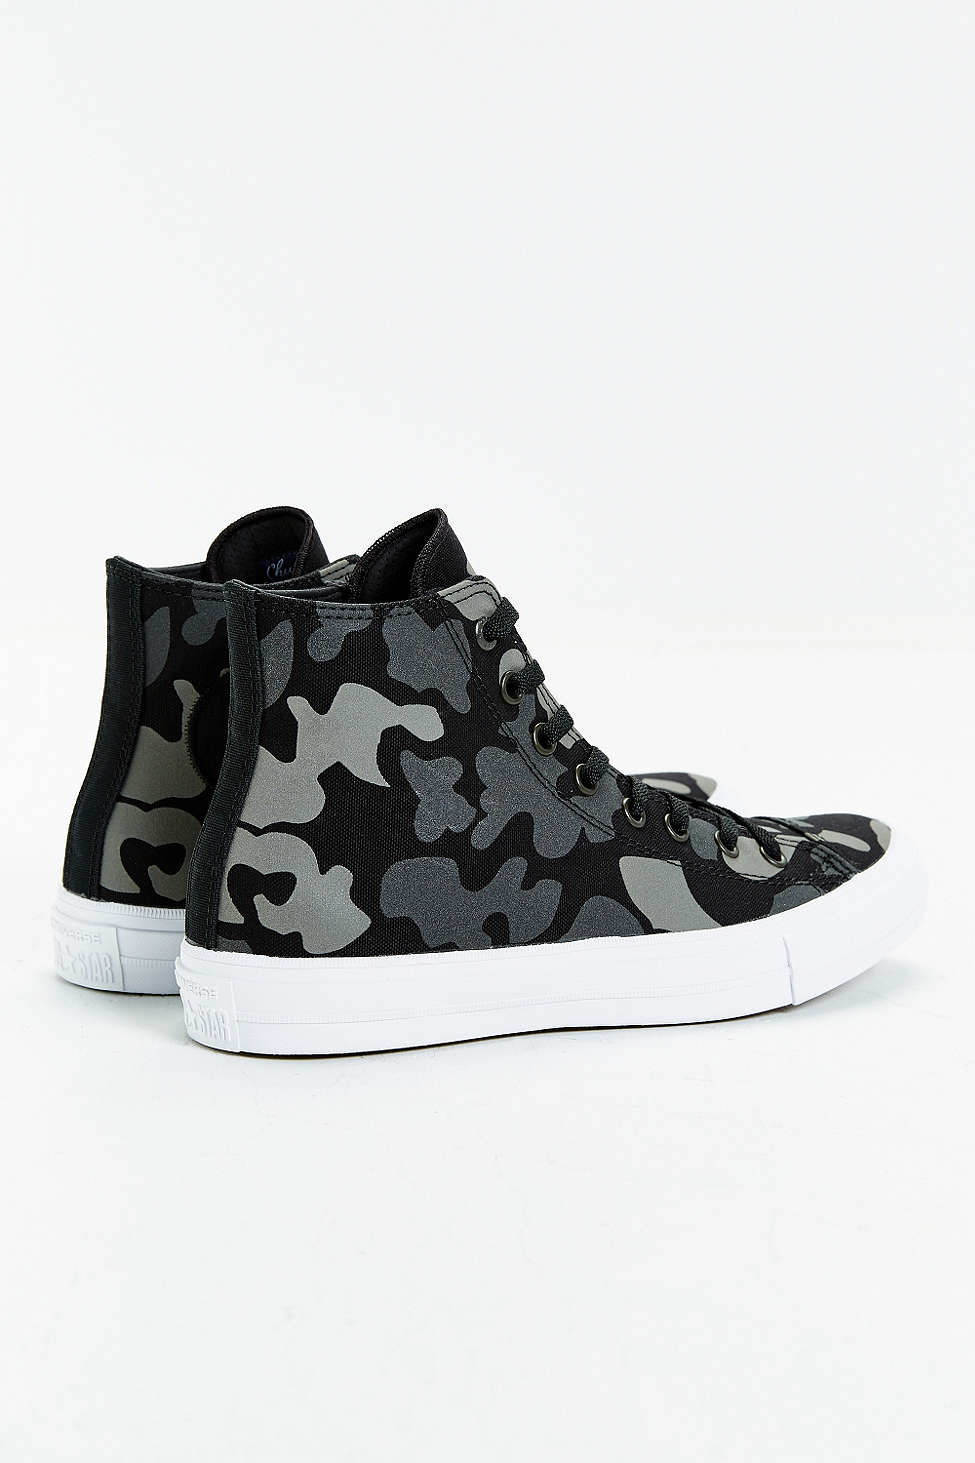 7f06a2afee8a Lyst - Converse Chuck Taylor All Star Ii Reflective Camo Sneaker in Blue